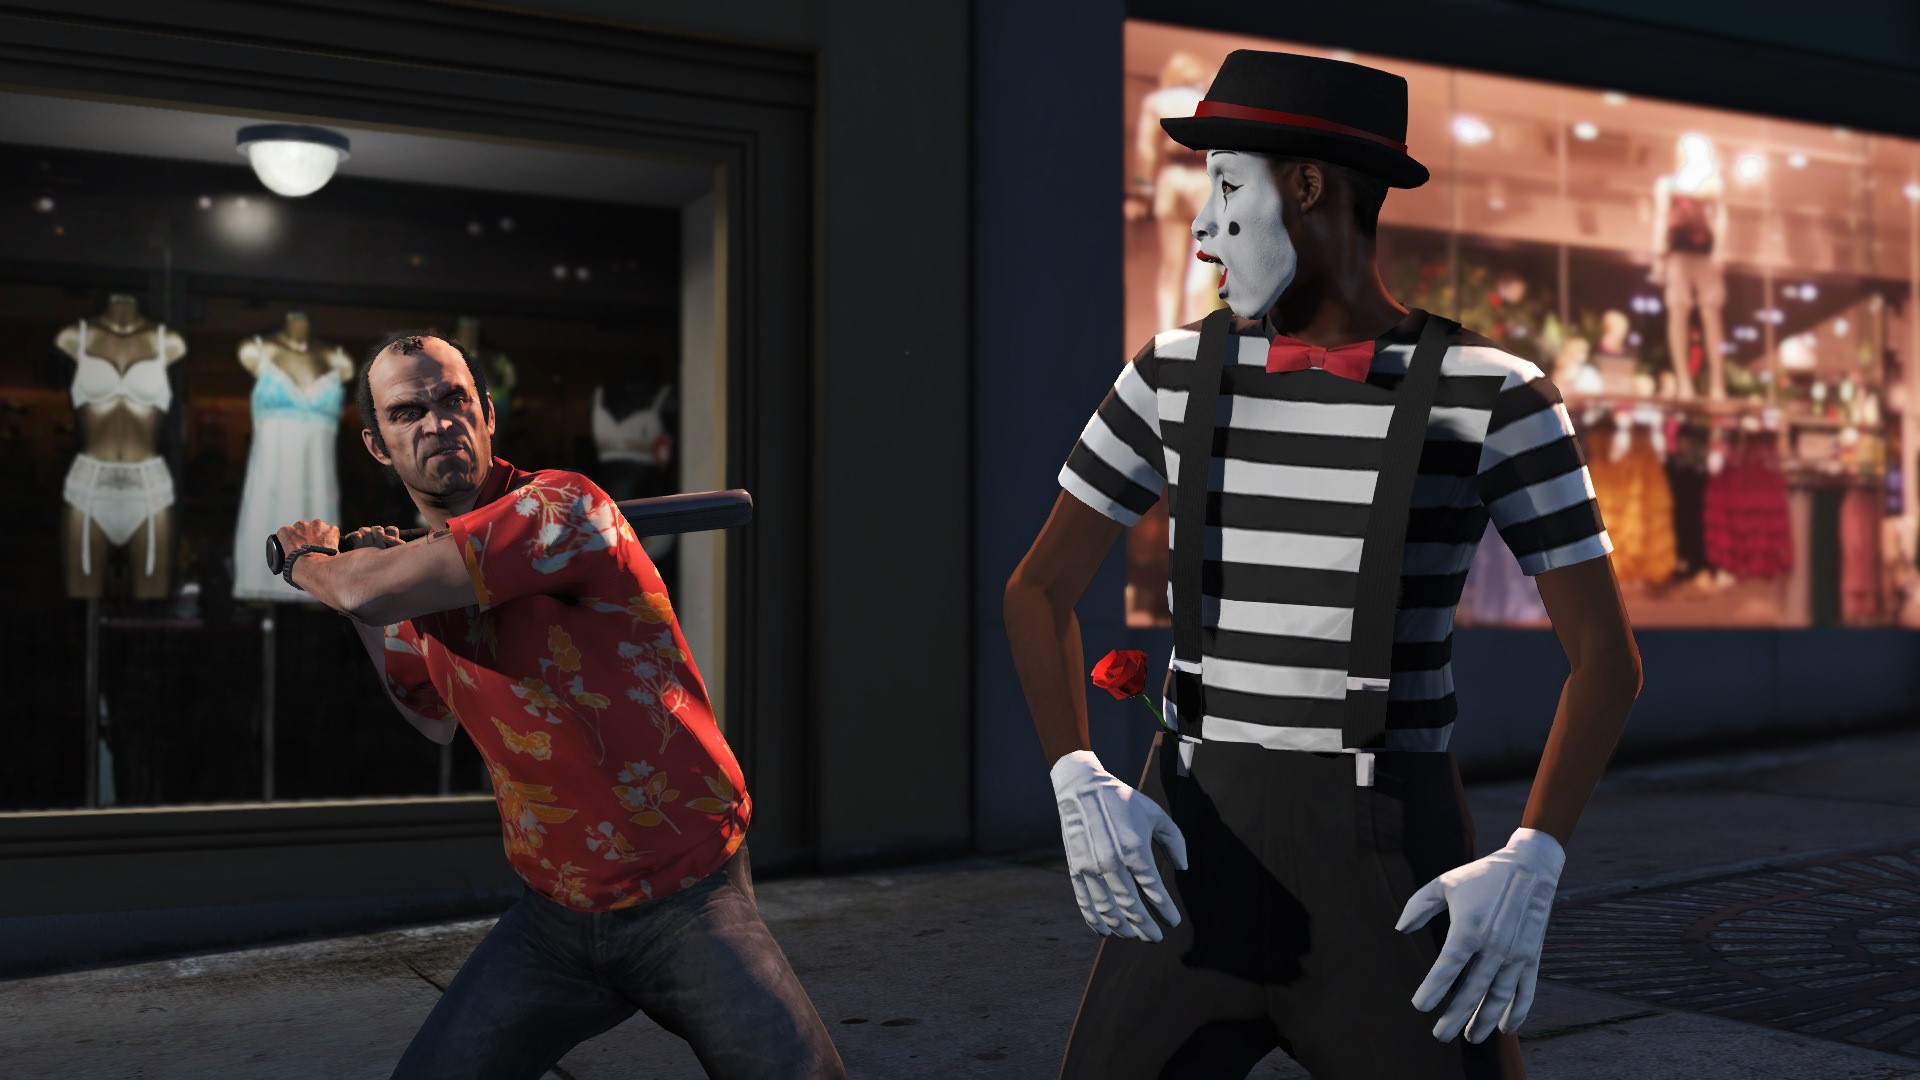 Grand Theft Auto V Wallpapers 2